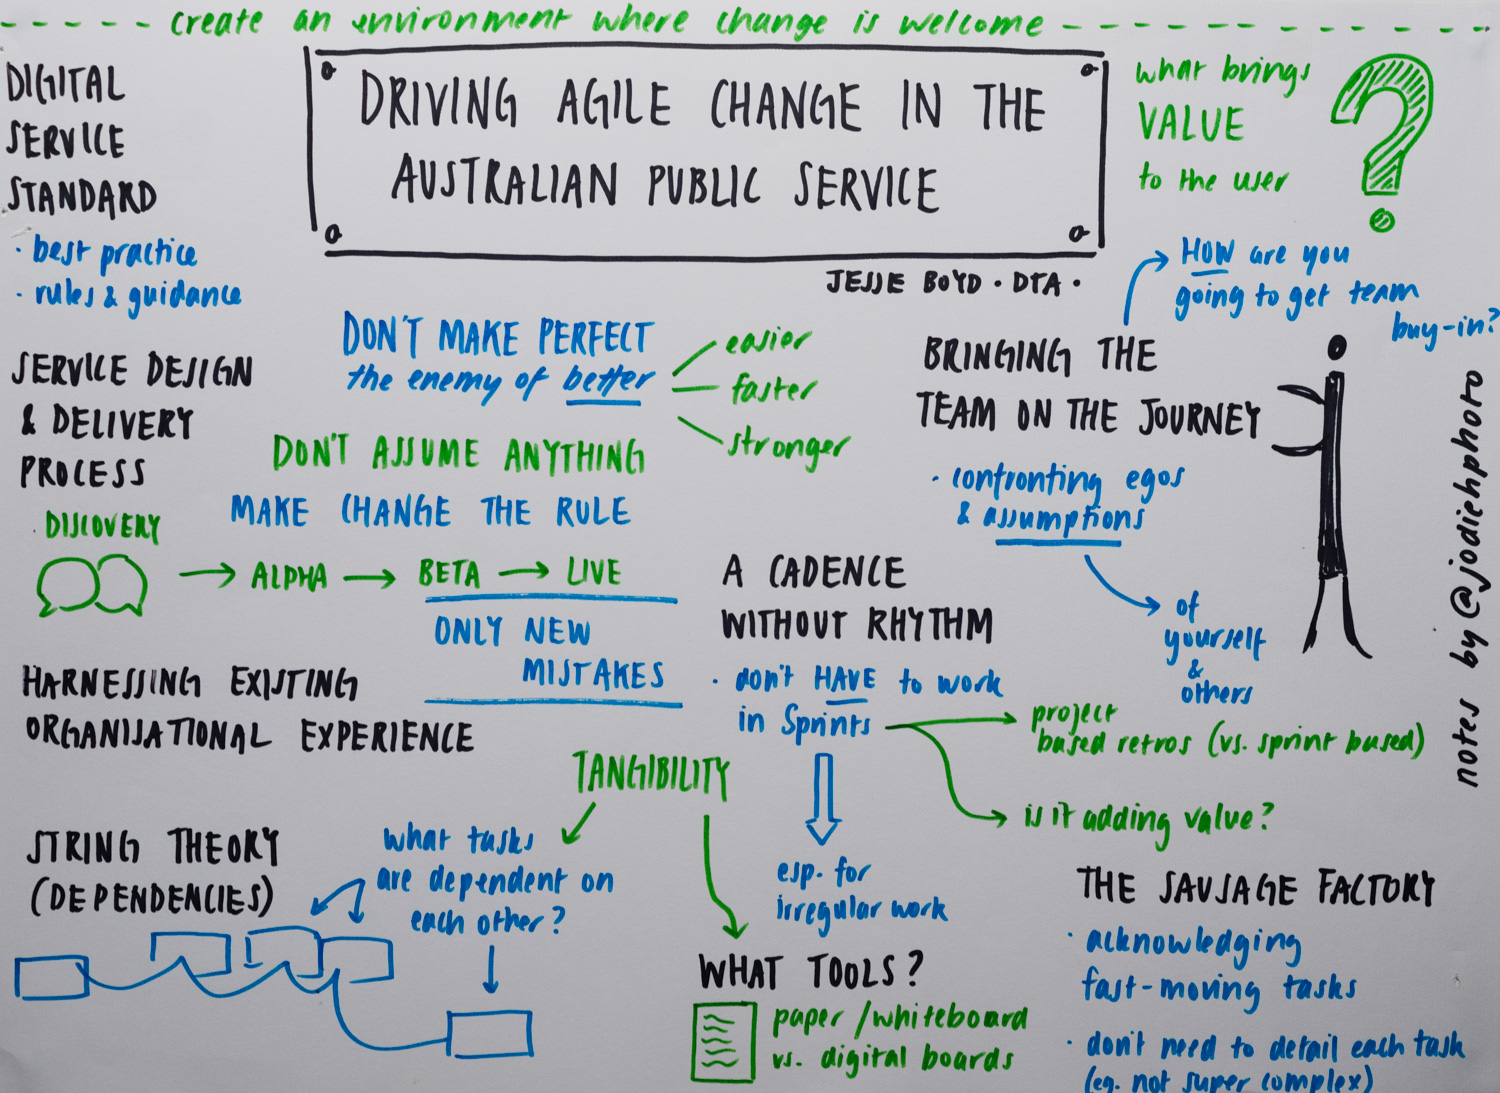 Driving agile change in the APS